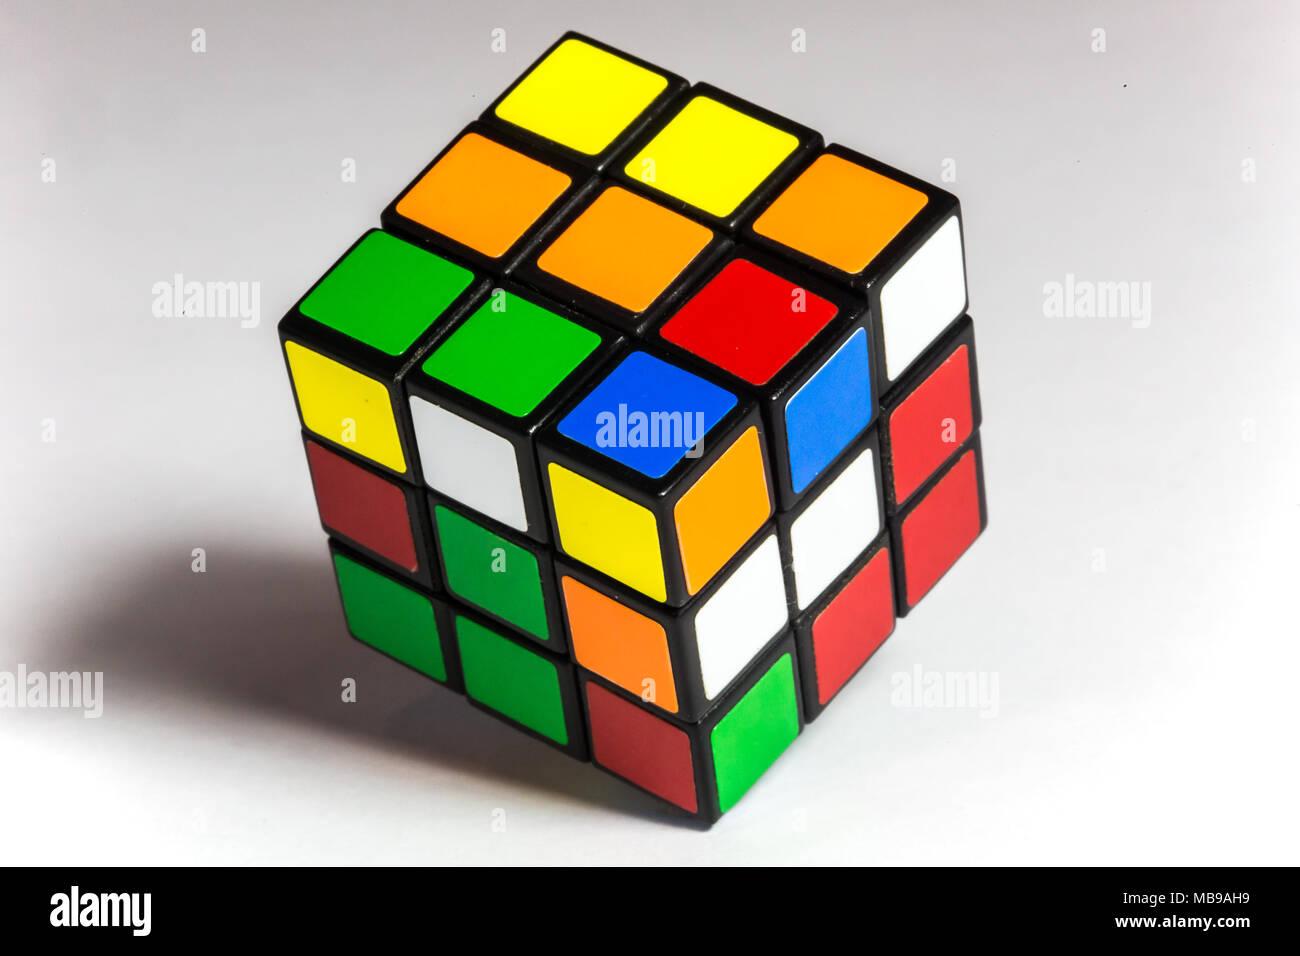 A Rubik's Cube (originally a Magic Cube) is a 3-D combination puzzle invented in 1974 by Hungarian sculptor and professor of architecture Ernő Rubik. - Stock Image